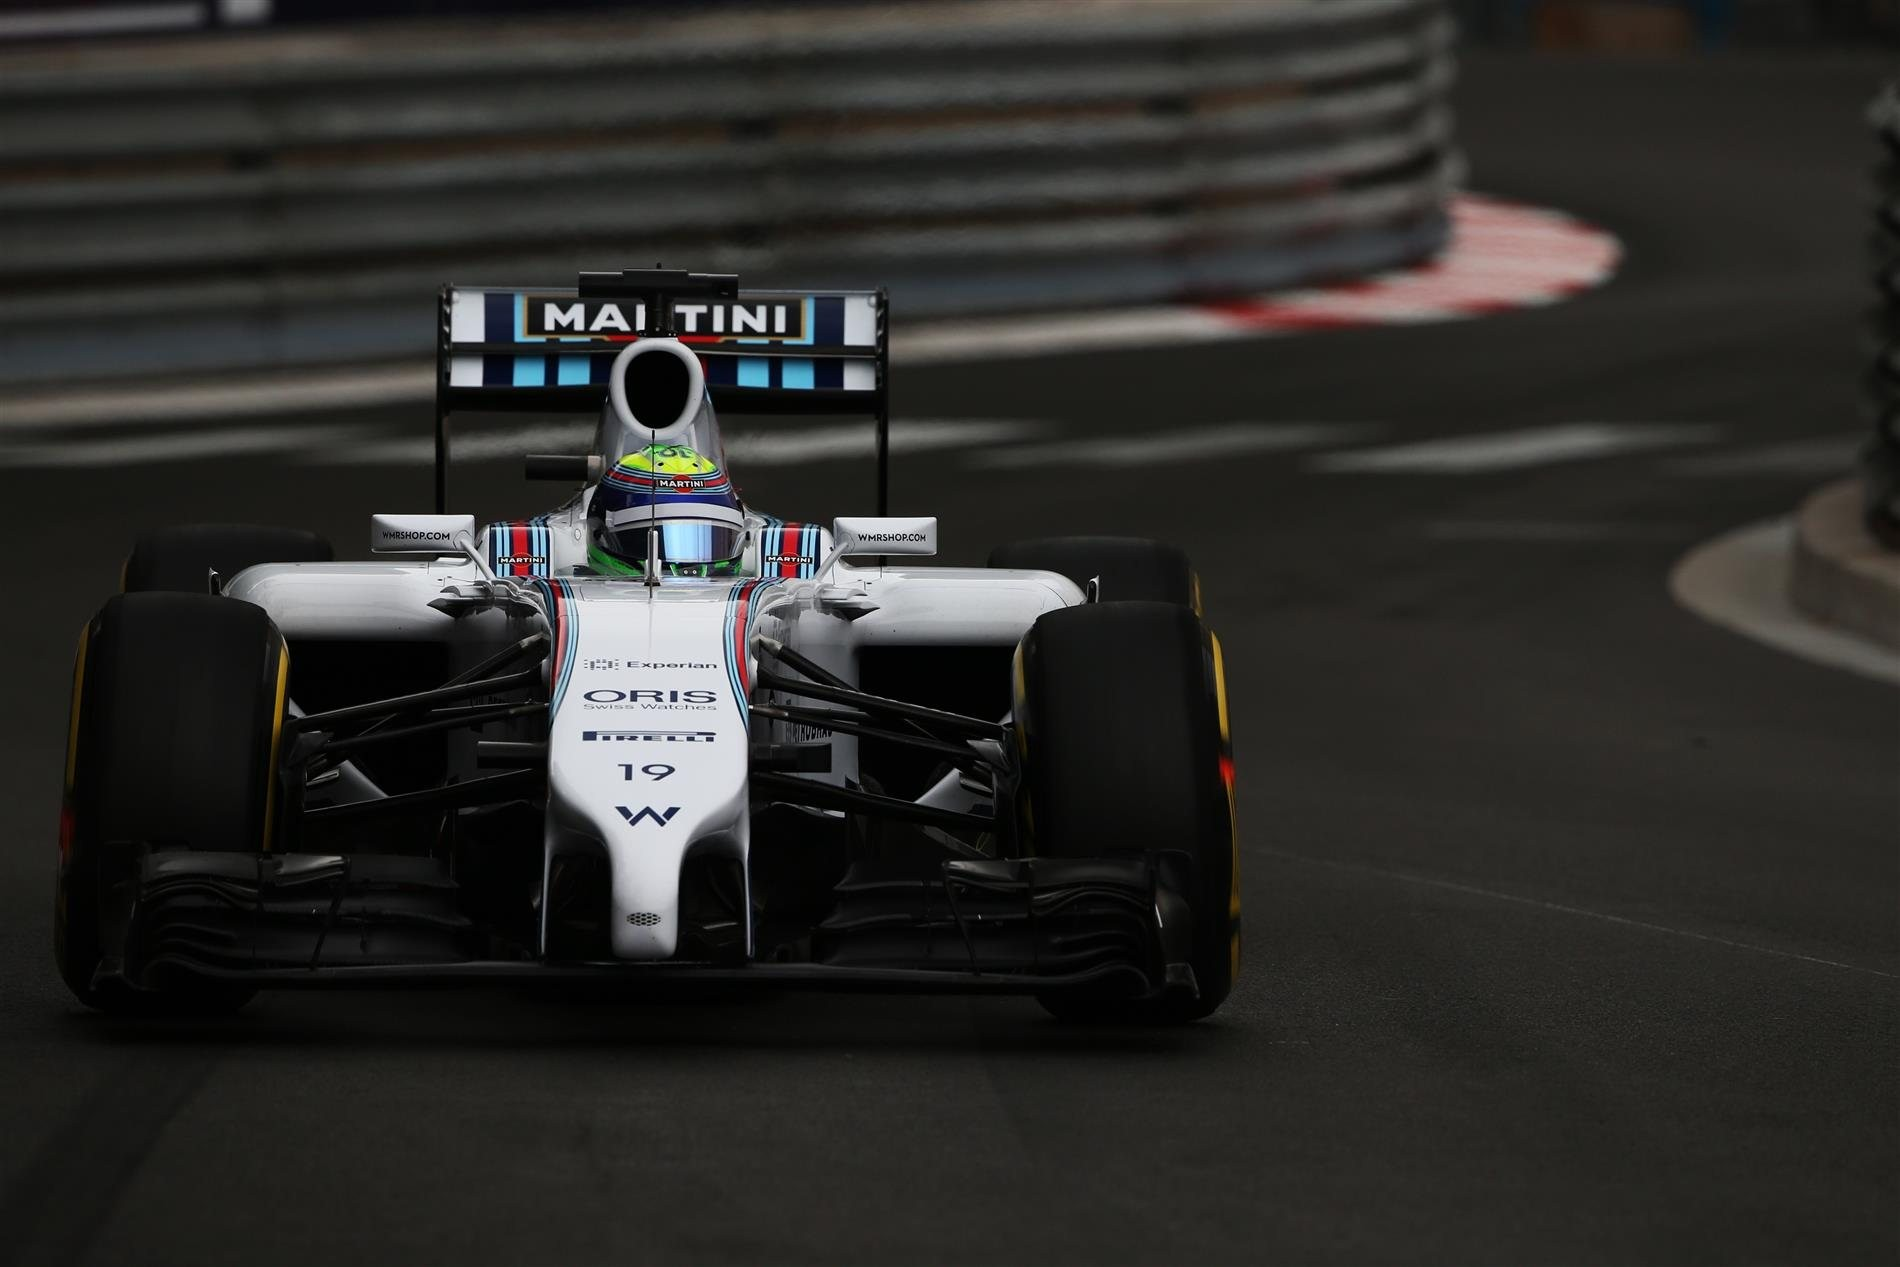 Massa_7th_monaco2014